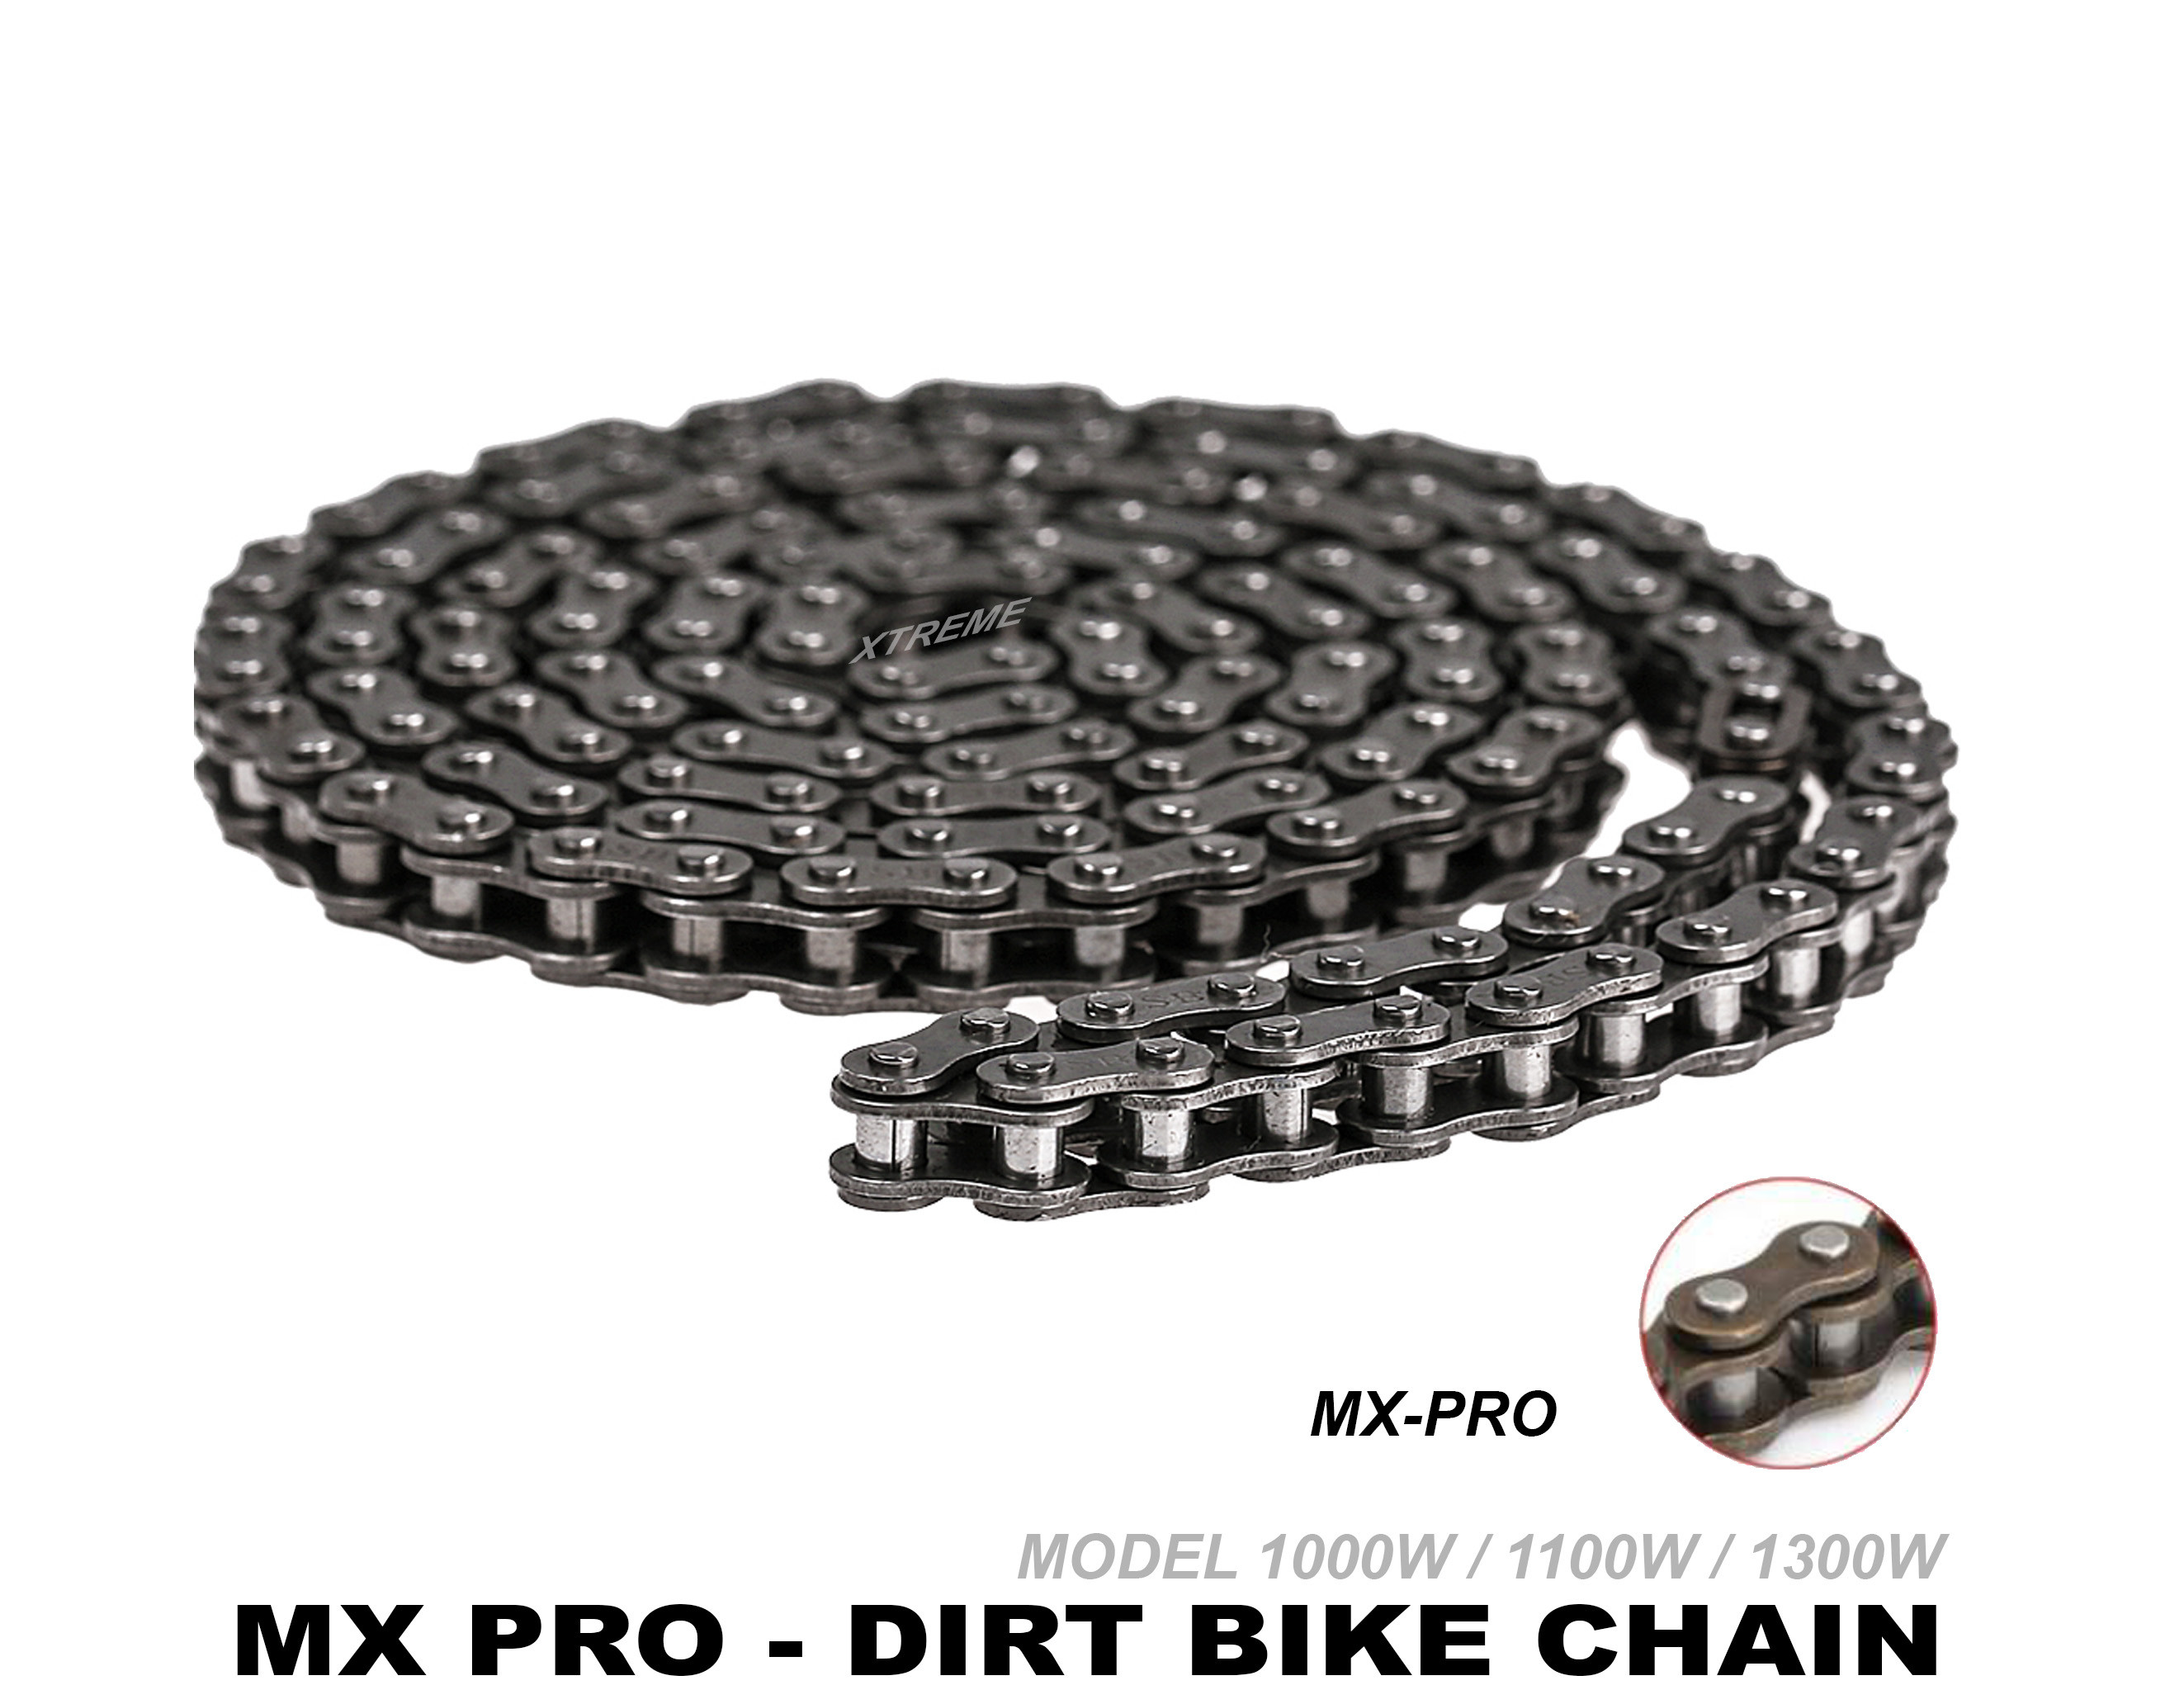 XTREME ELECTRIC XTM MX-PRO 36V REPLACEMENT 6MM CHAIN 219-116 LINKS